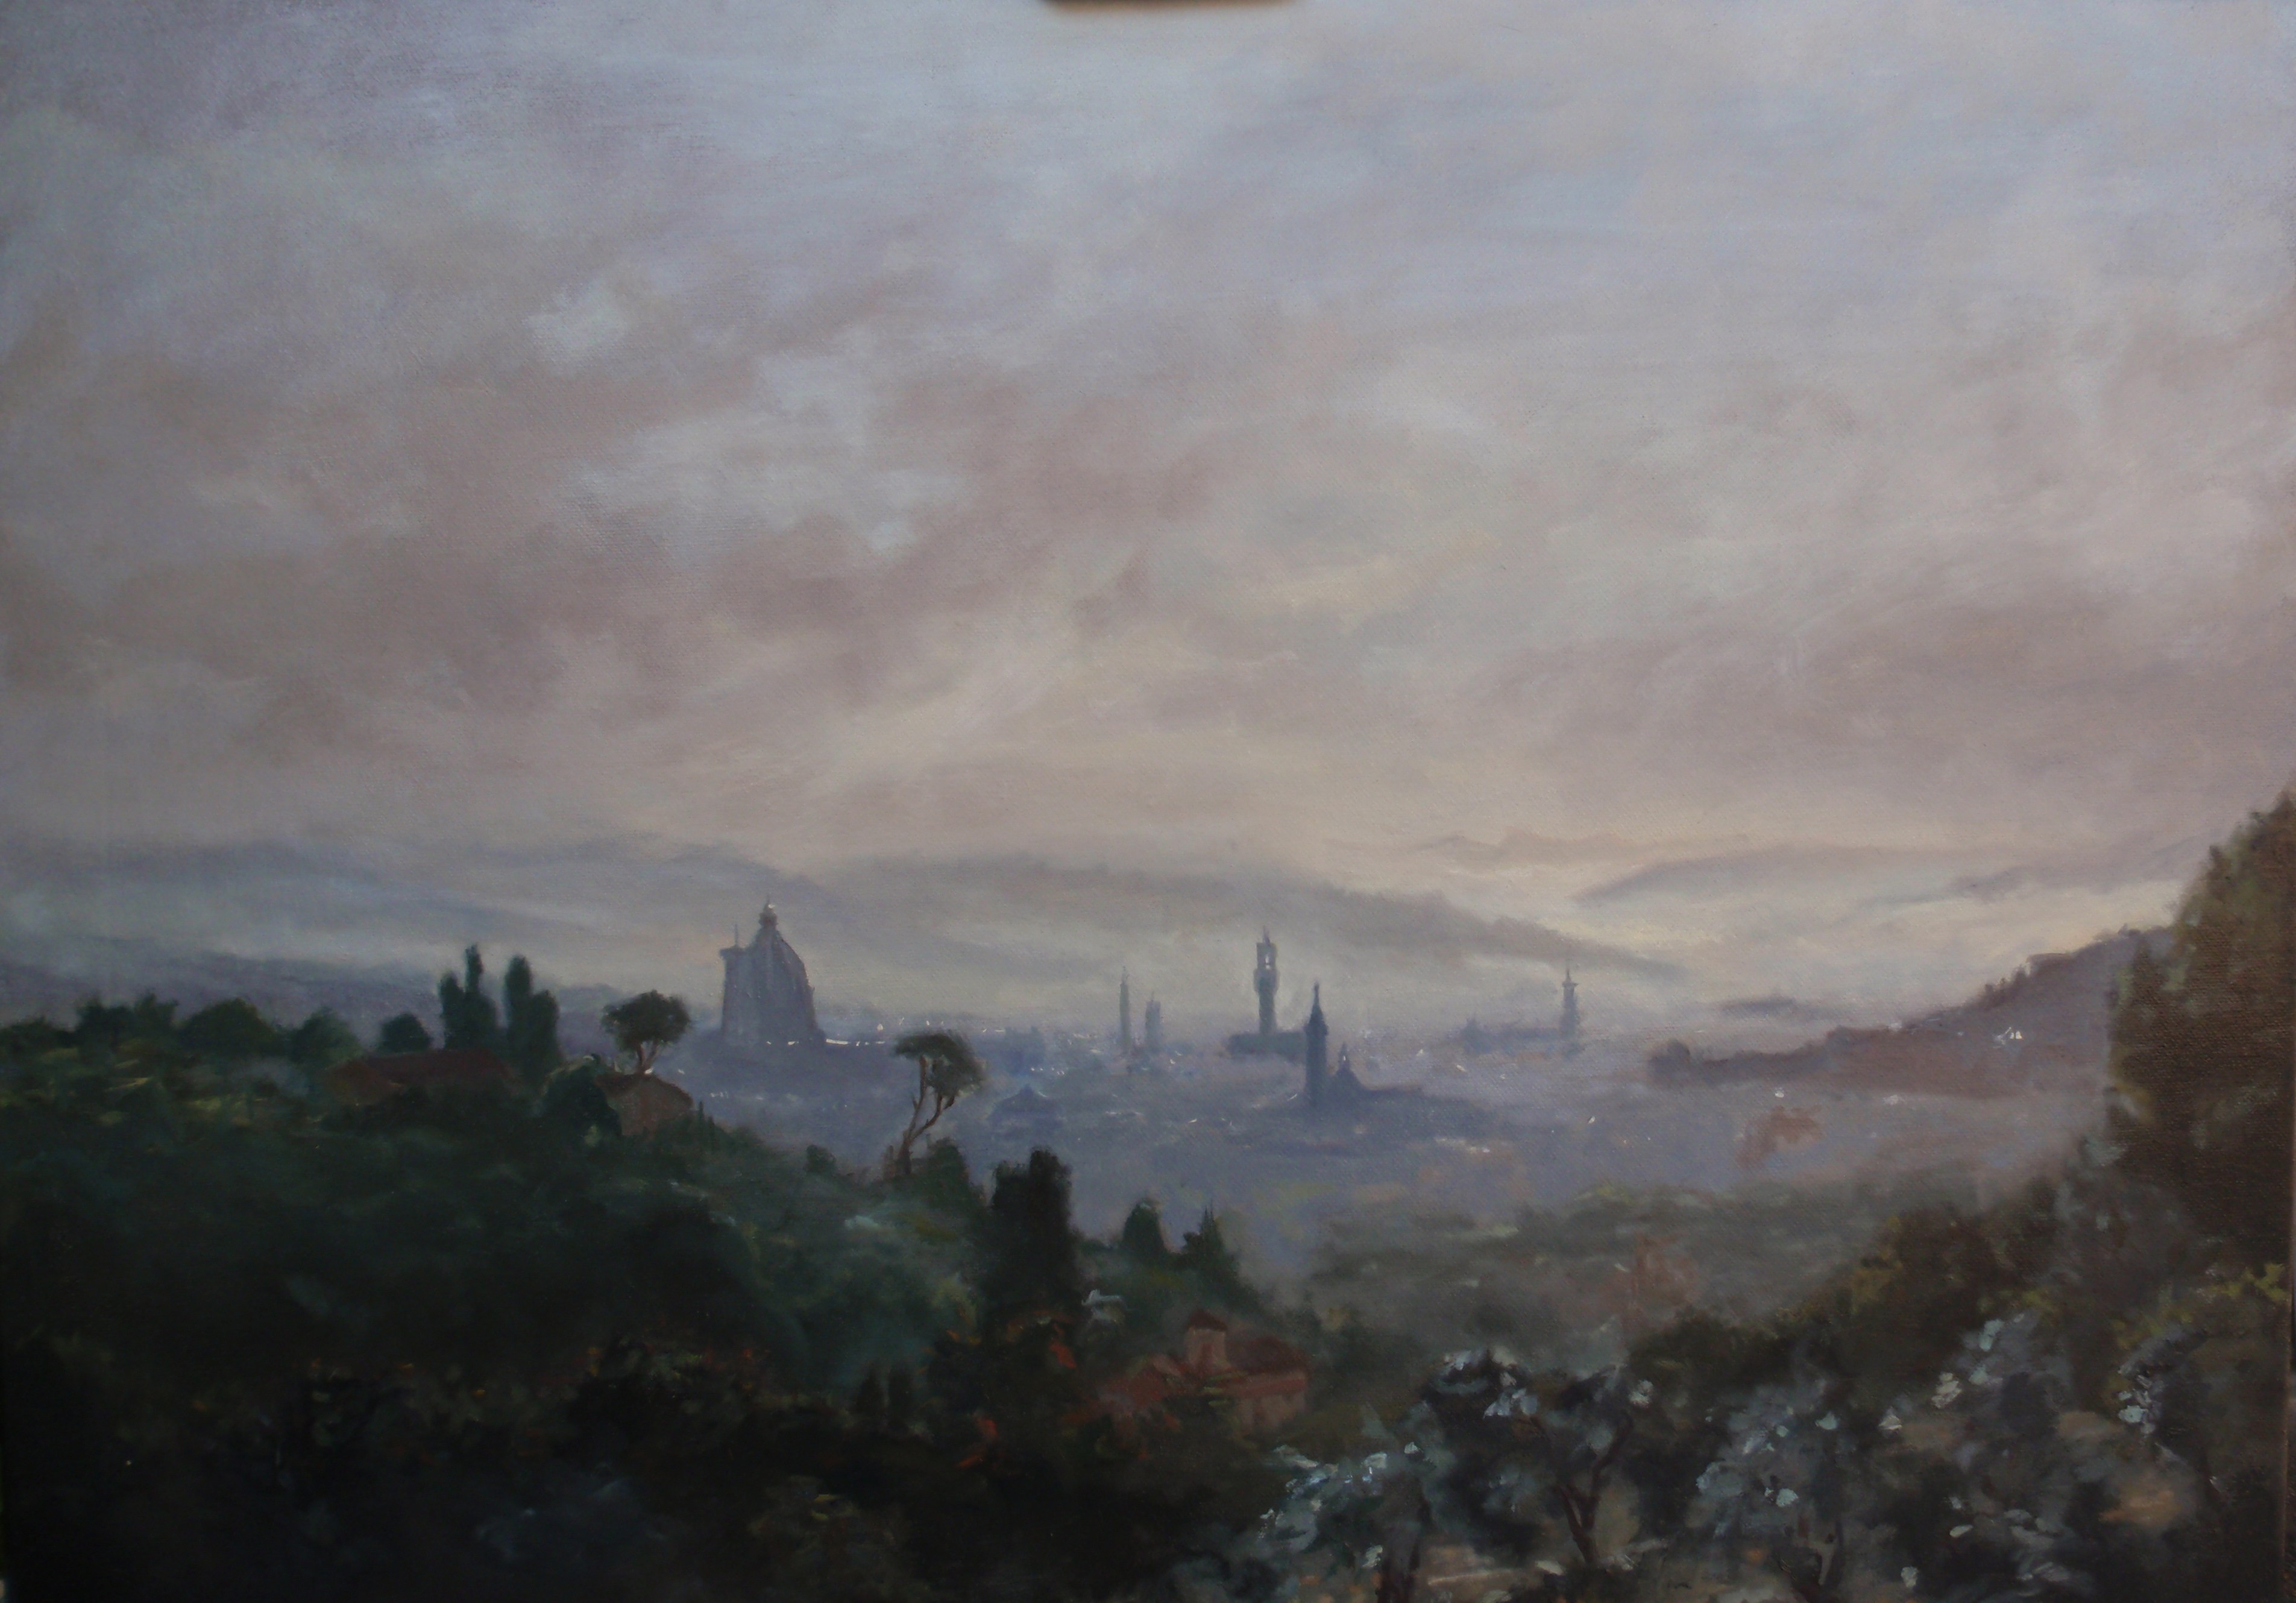 Florence - Sunrise in the mist